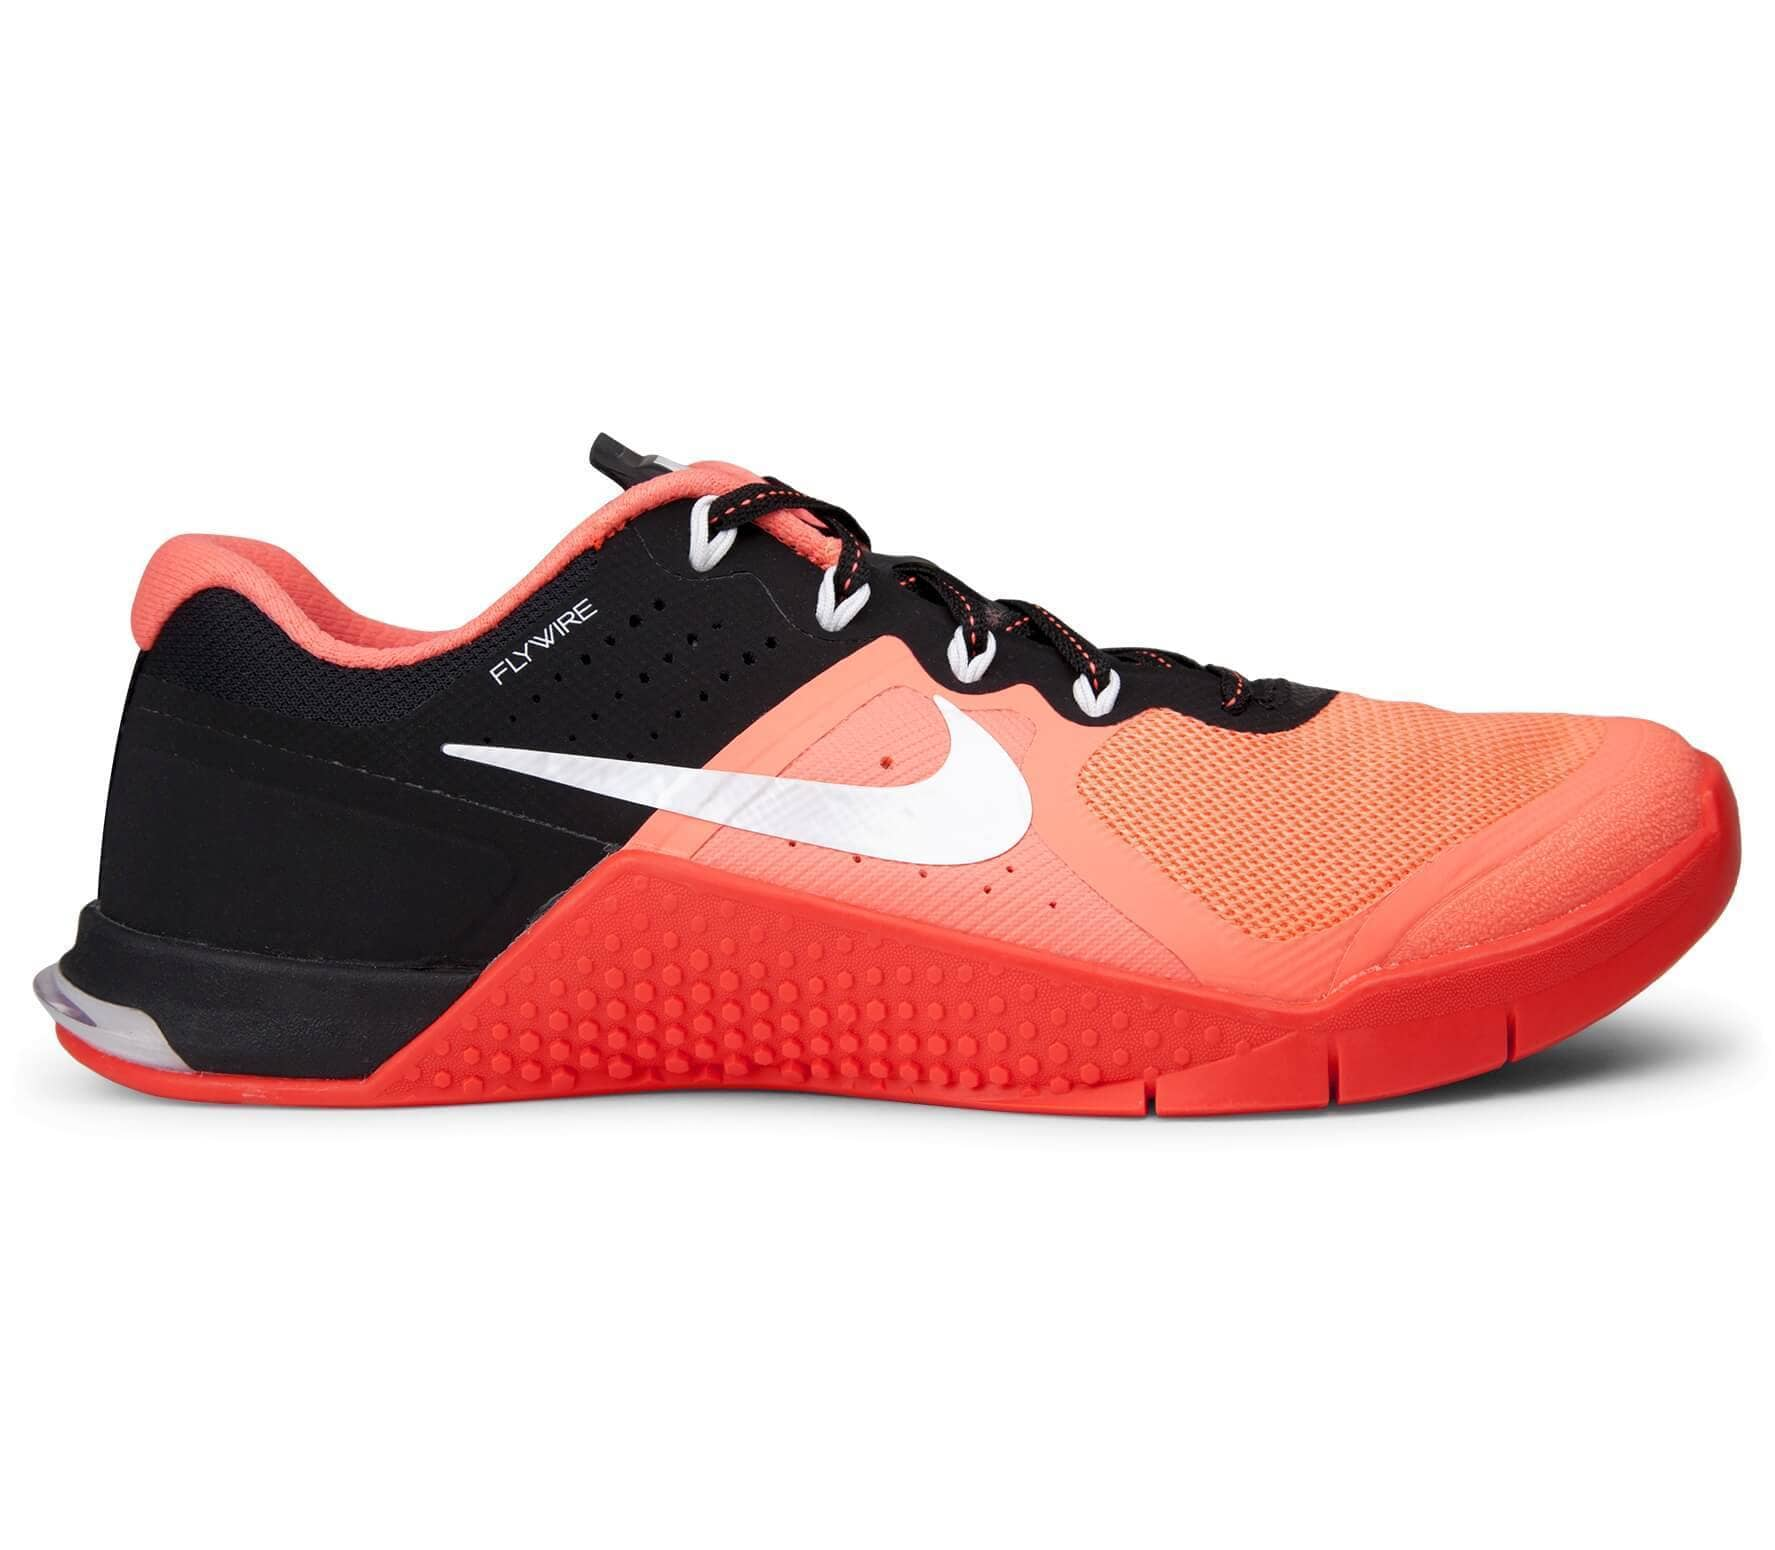 pretty nice 92338 51afa Nike - Metcon 2 women's training shoes (black/coral) - buy it at the ...